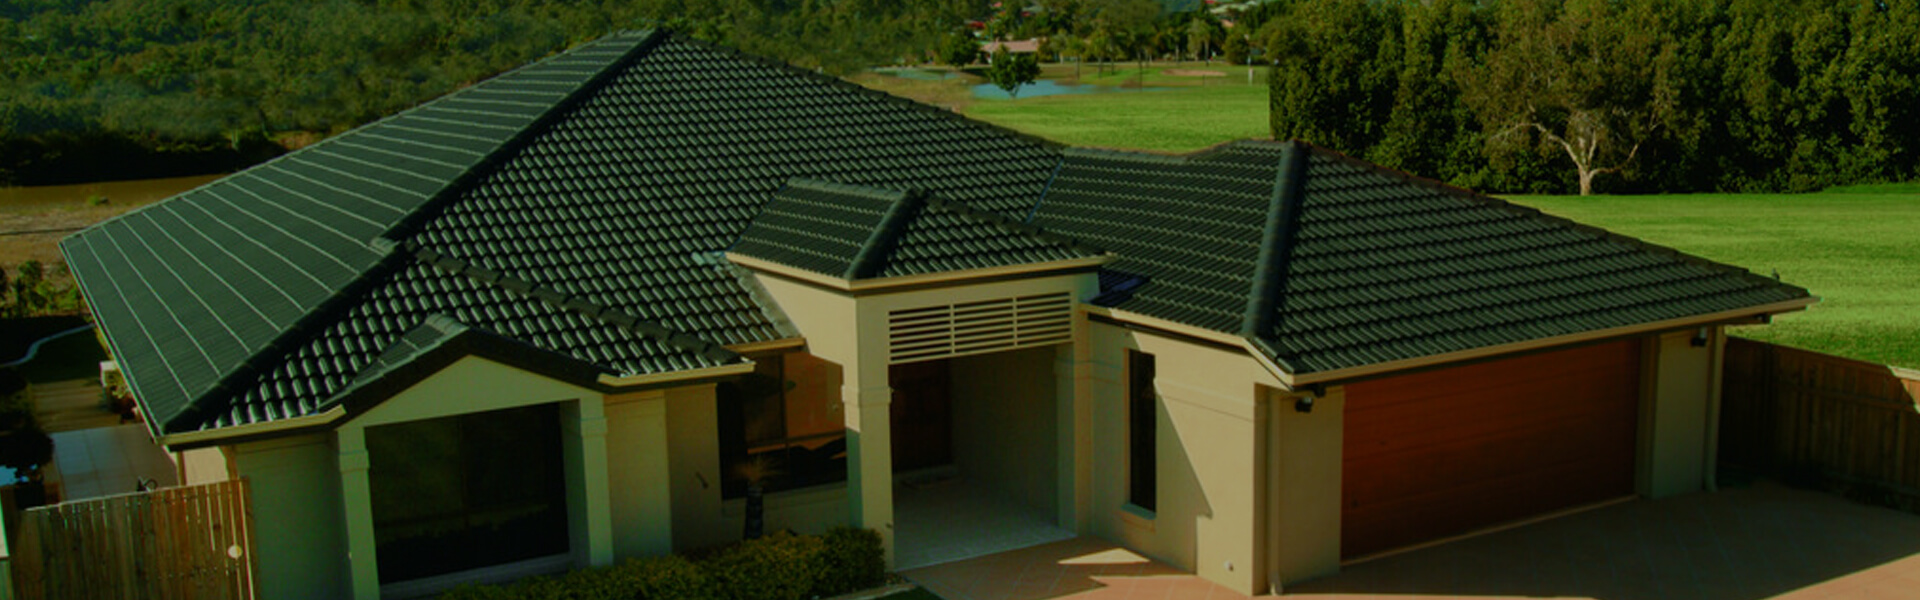 Roof Tiles - Contact Terracotta Concrete Roofing Adelaide